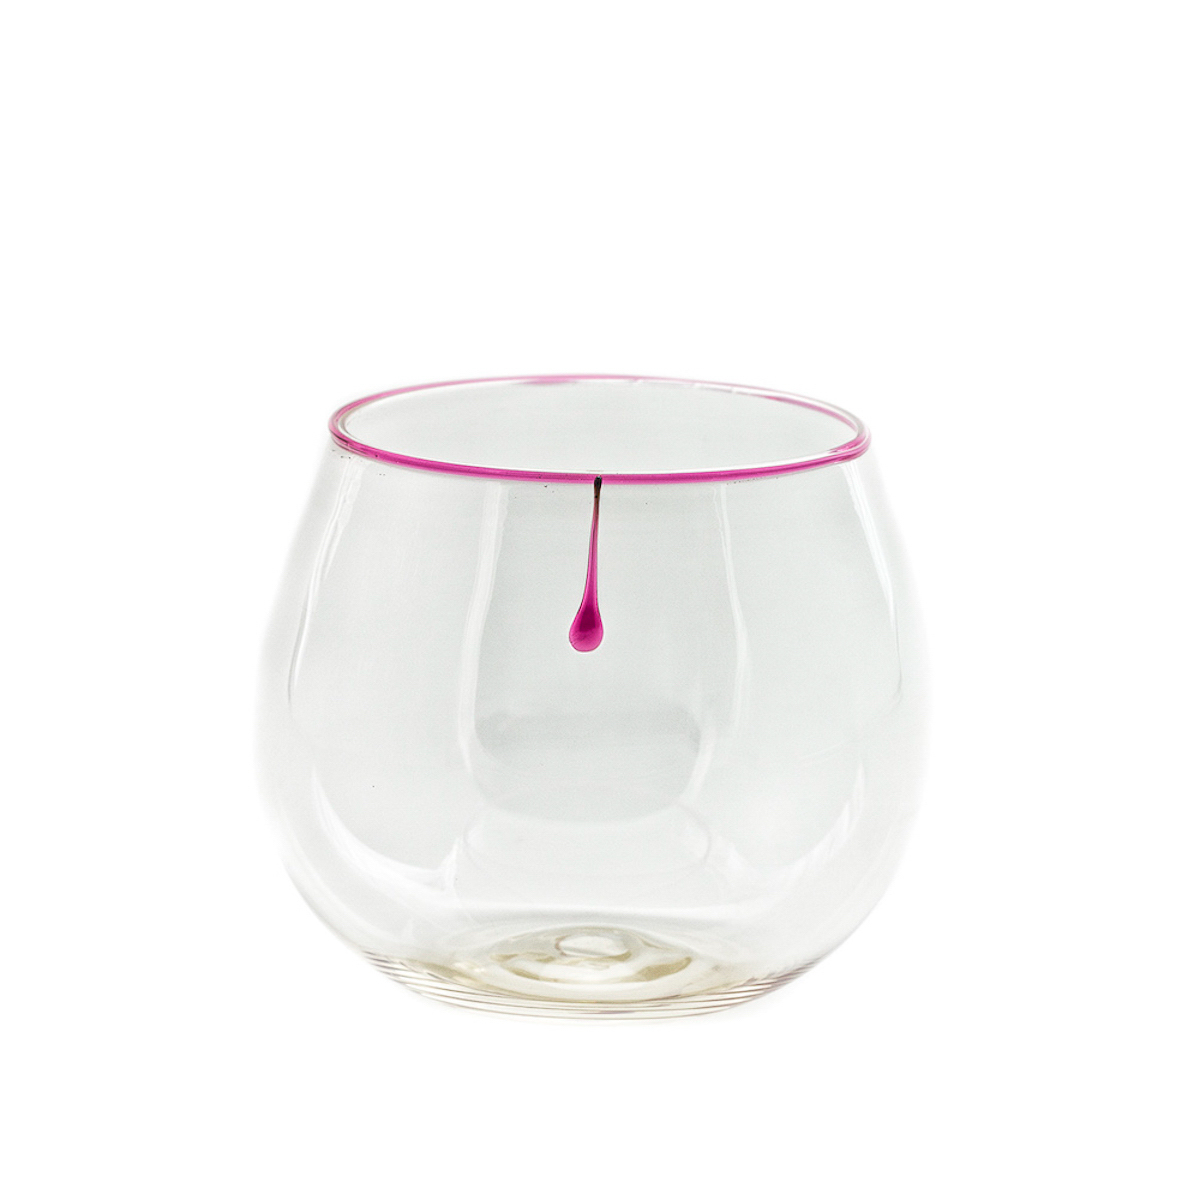 cristina-wine-glass-lacrima-ruby-design-giberto